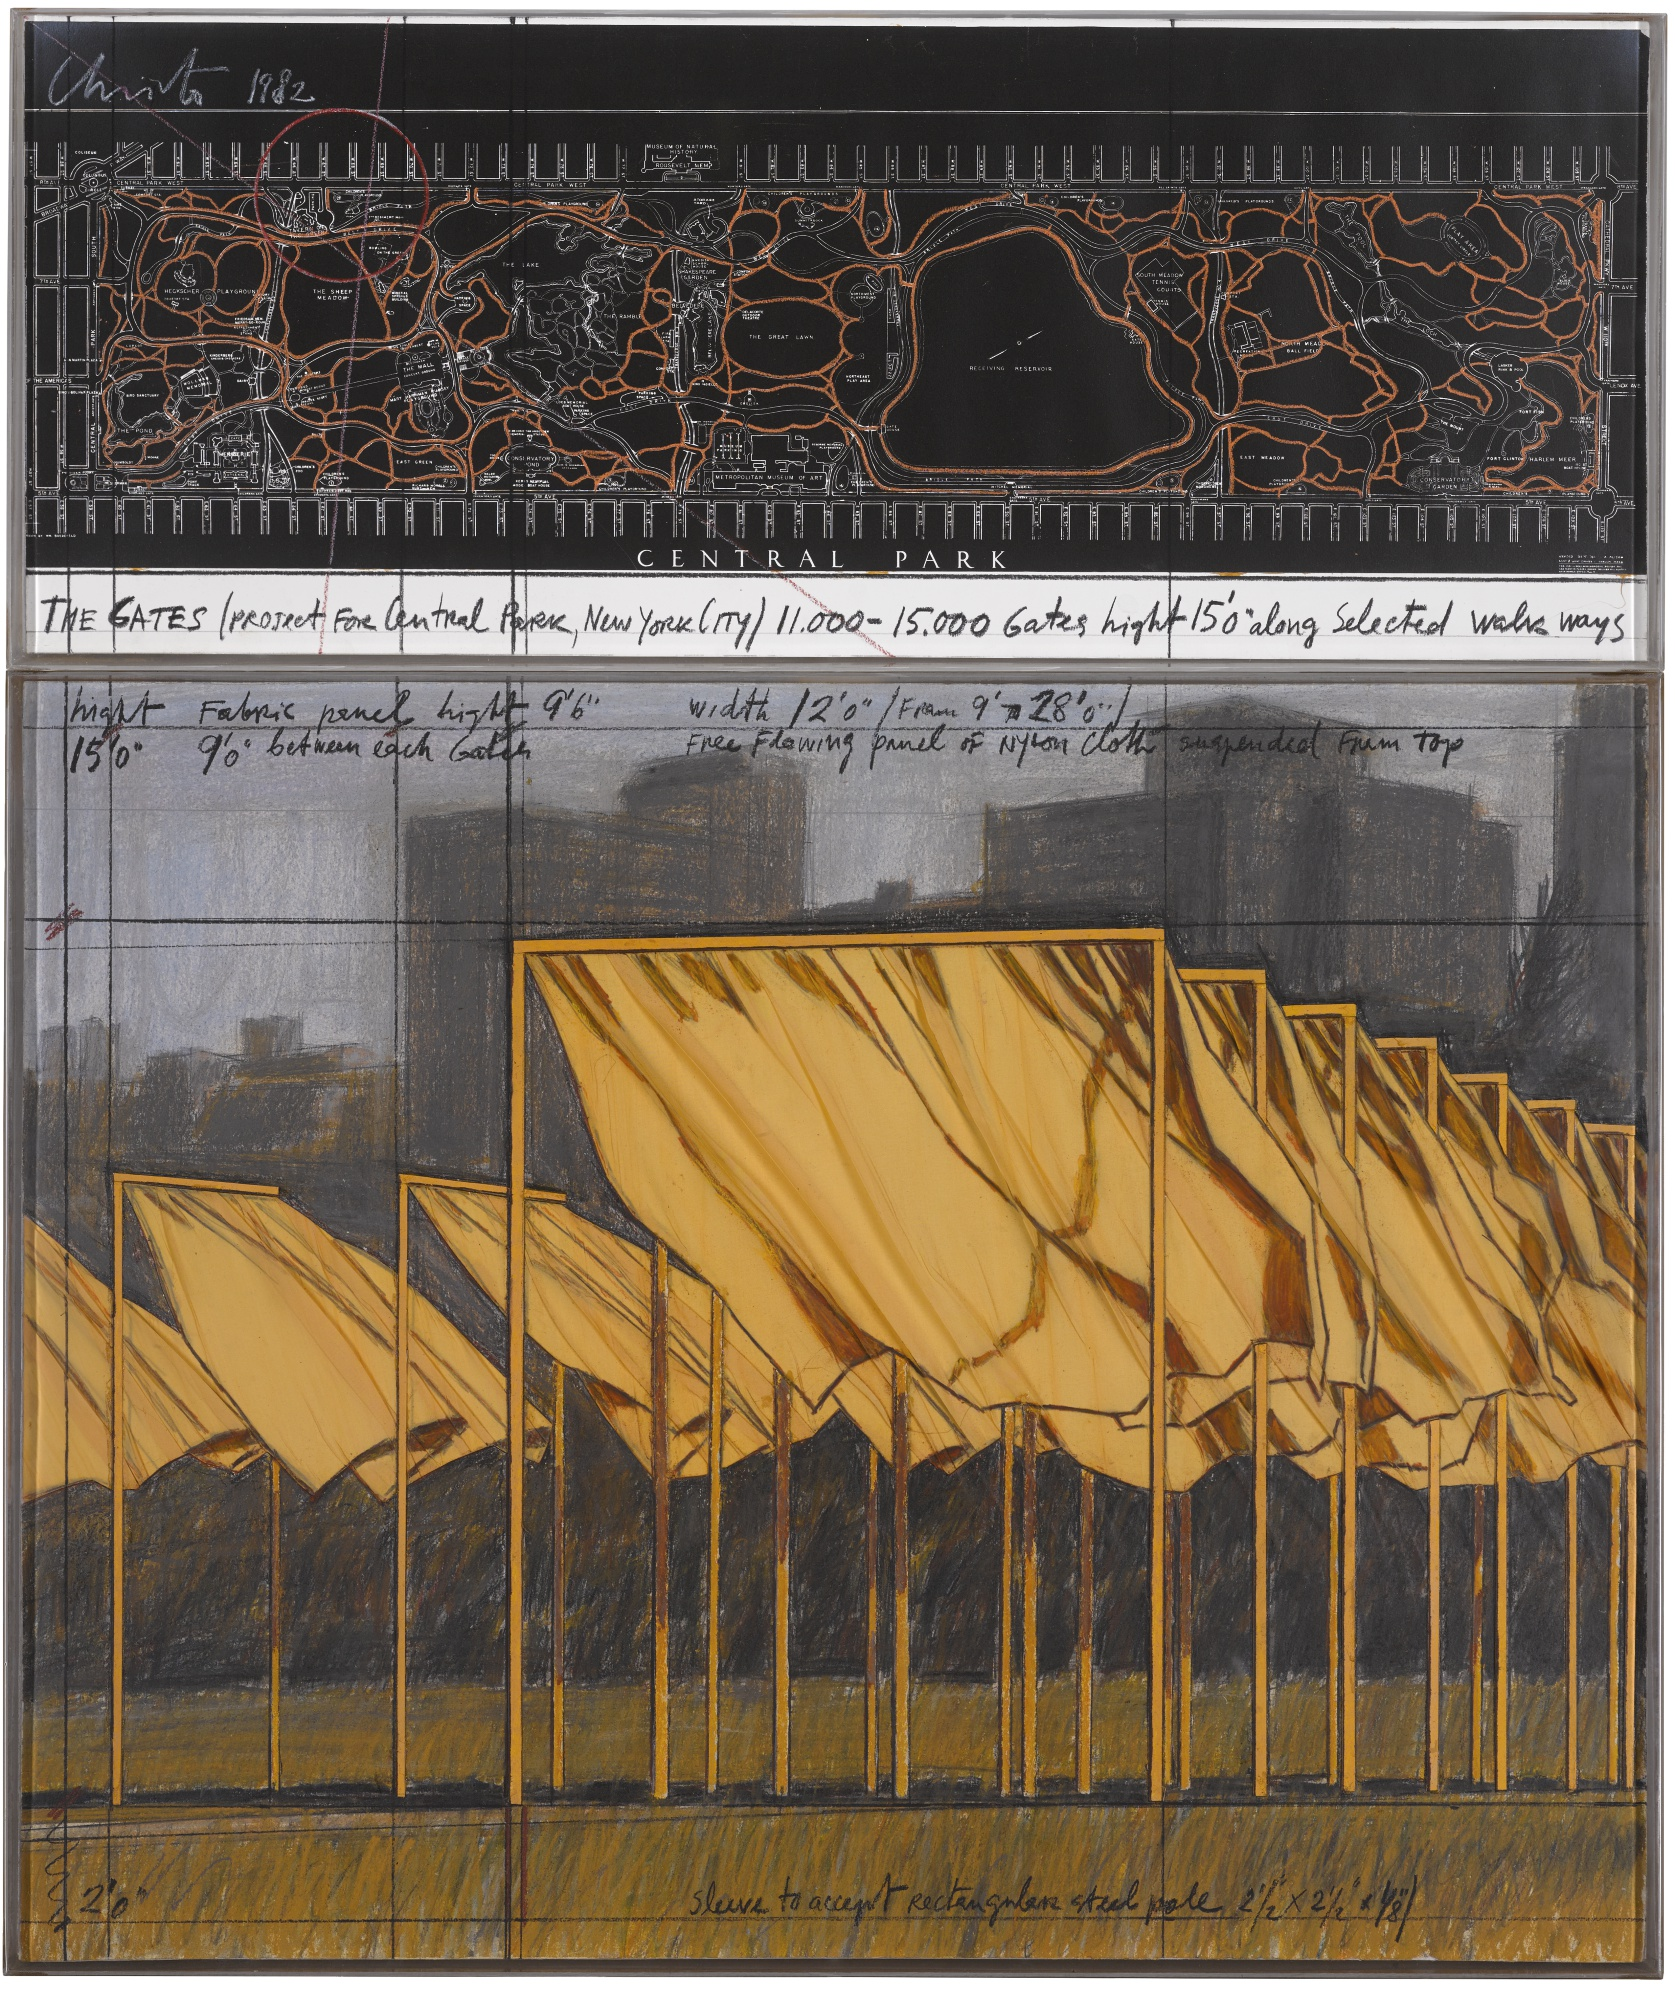 Christo and Jeanne-Claude-The Gates (Project For Central Park New York City)-1982